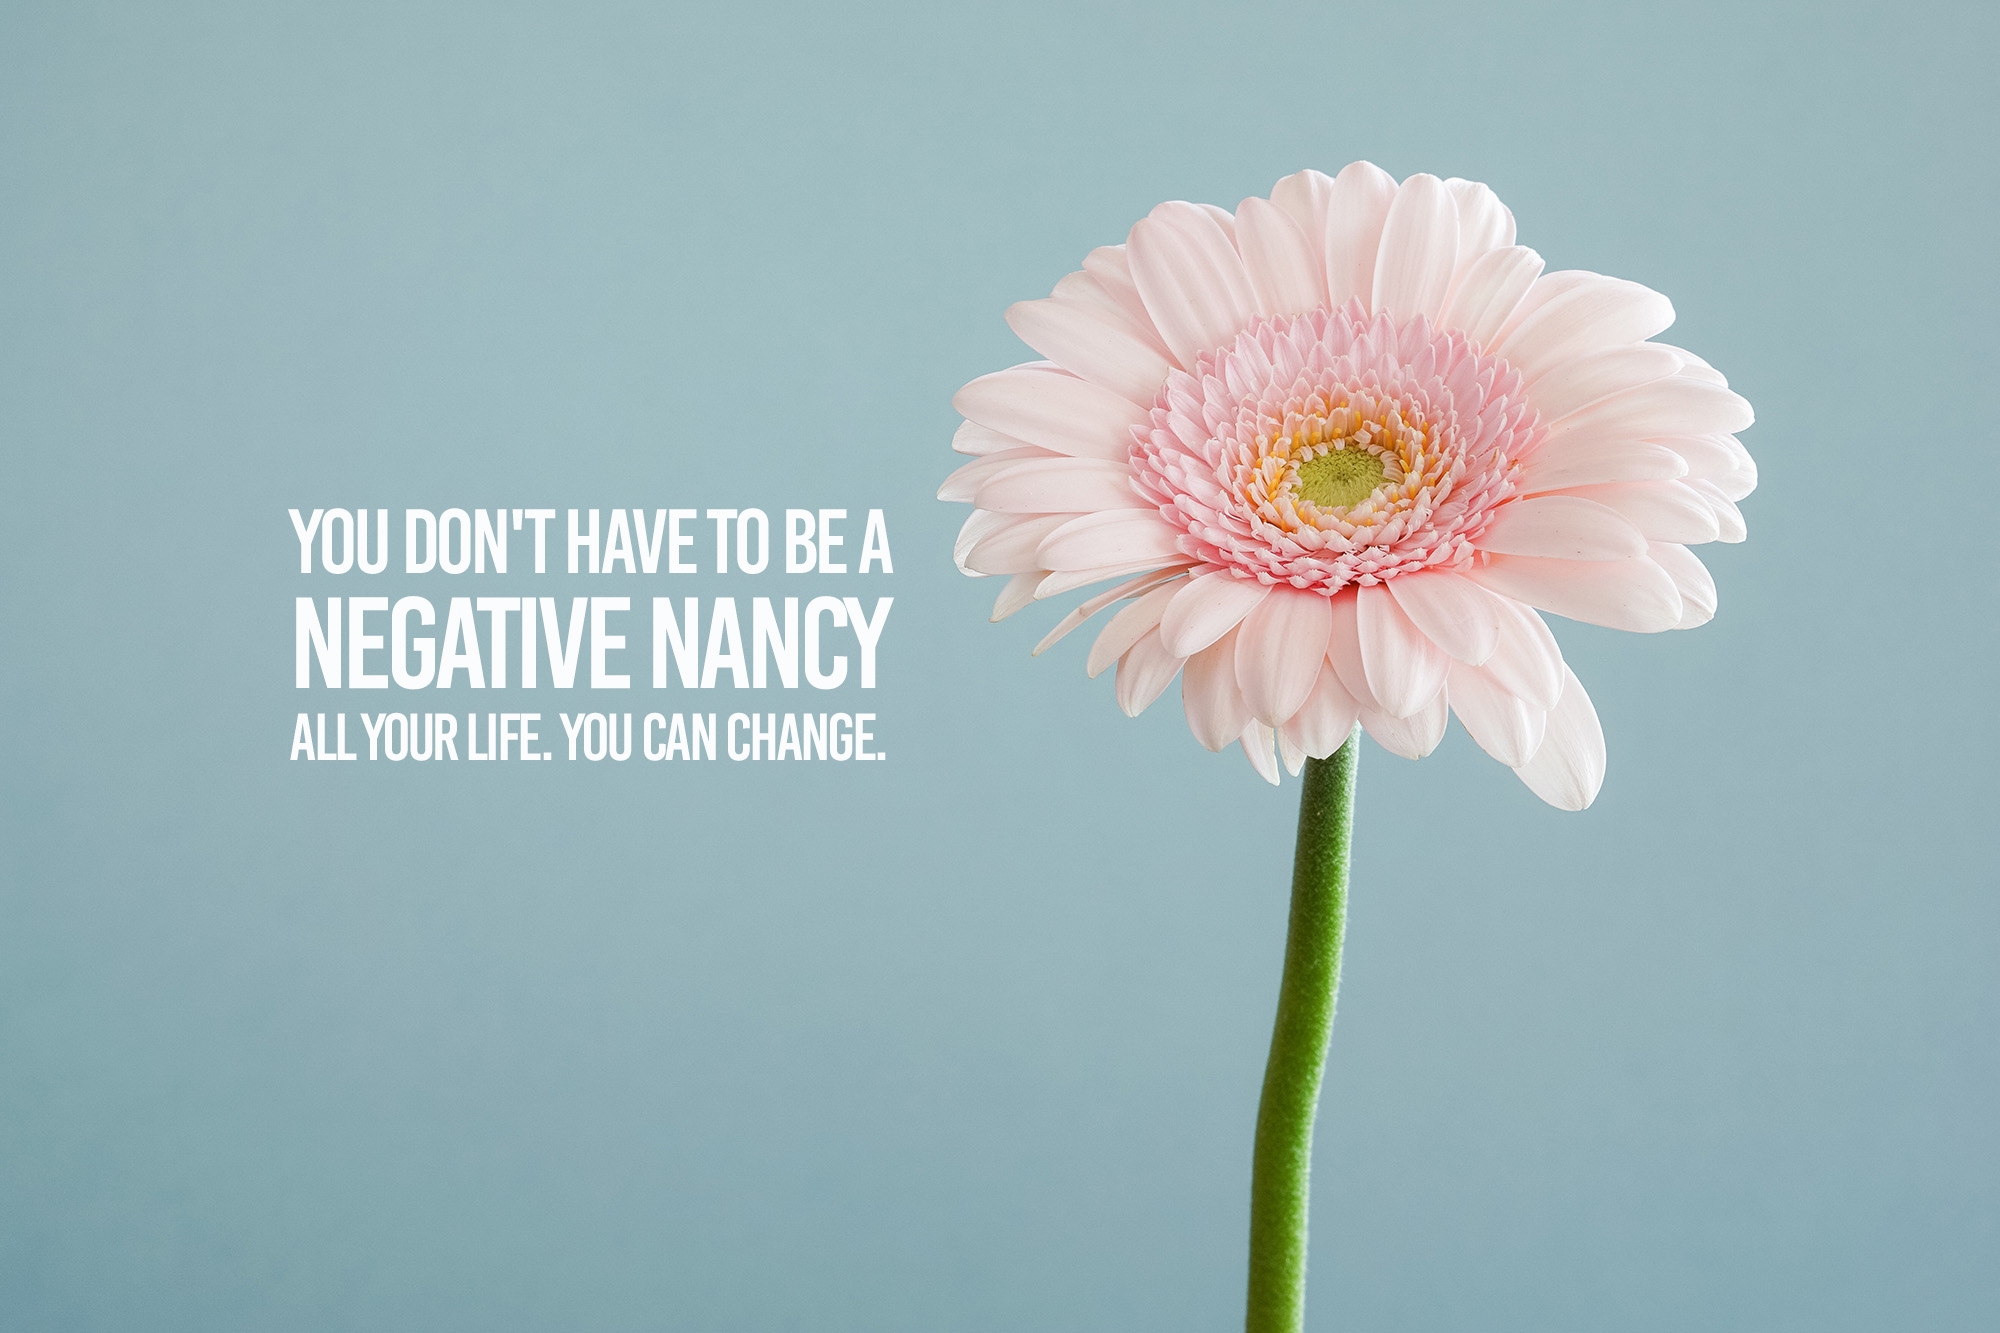 You don't have to be a negative nancy all your life